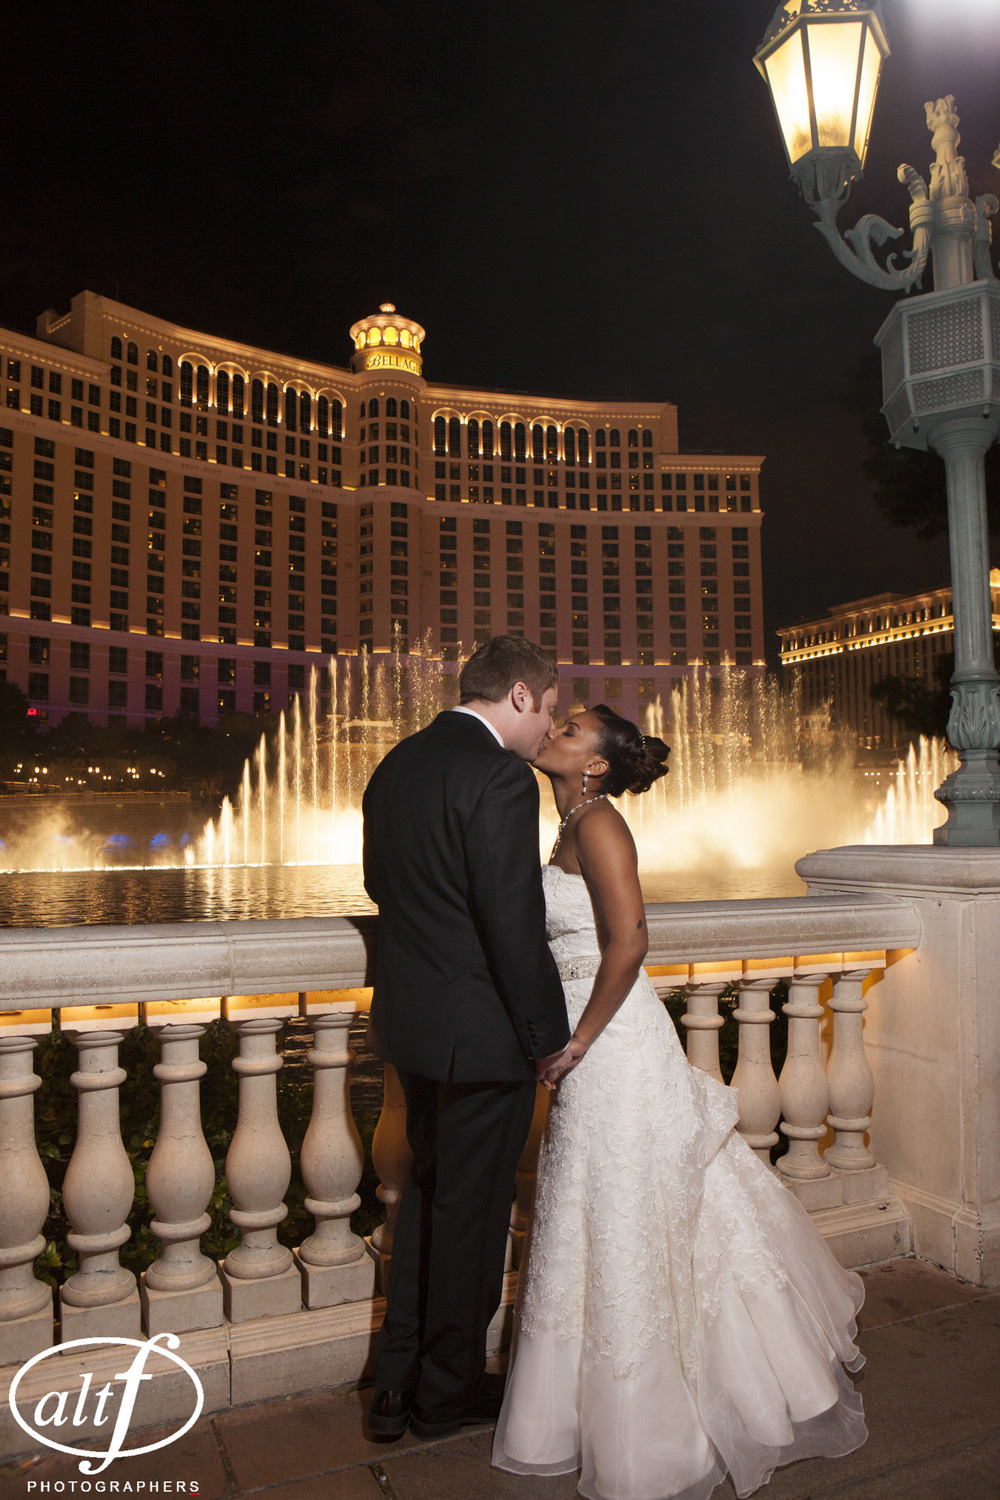 Wedding Photos at Bellagio Fountain.  Las Vegas Wedding Planner Andrea Eppolito  |  Wedding at Bellagio  |  Photo by Alt F